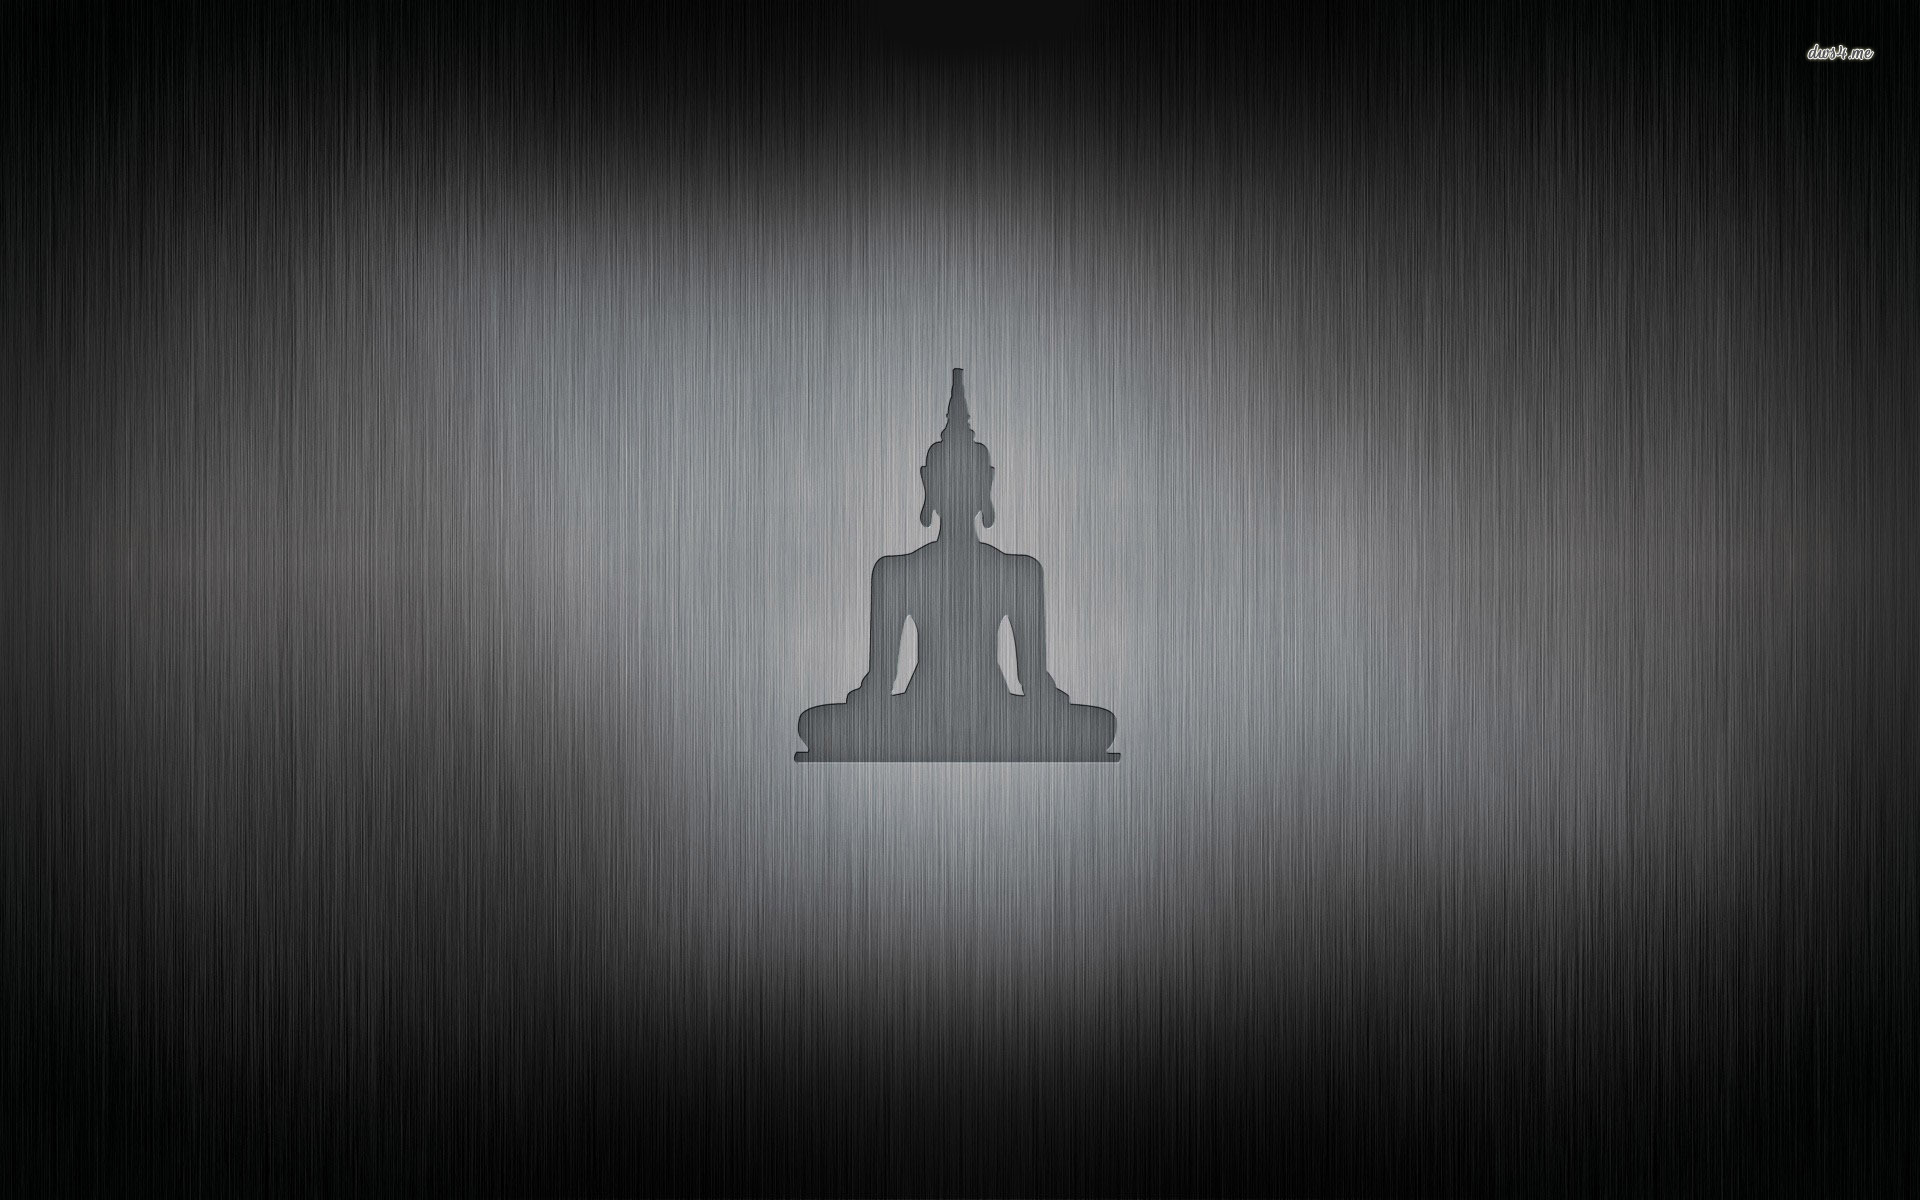 Buddha Wallpaper pictures HD black and white